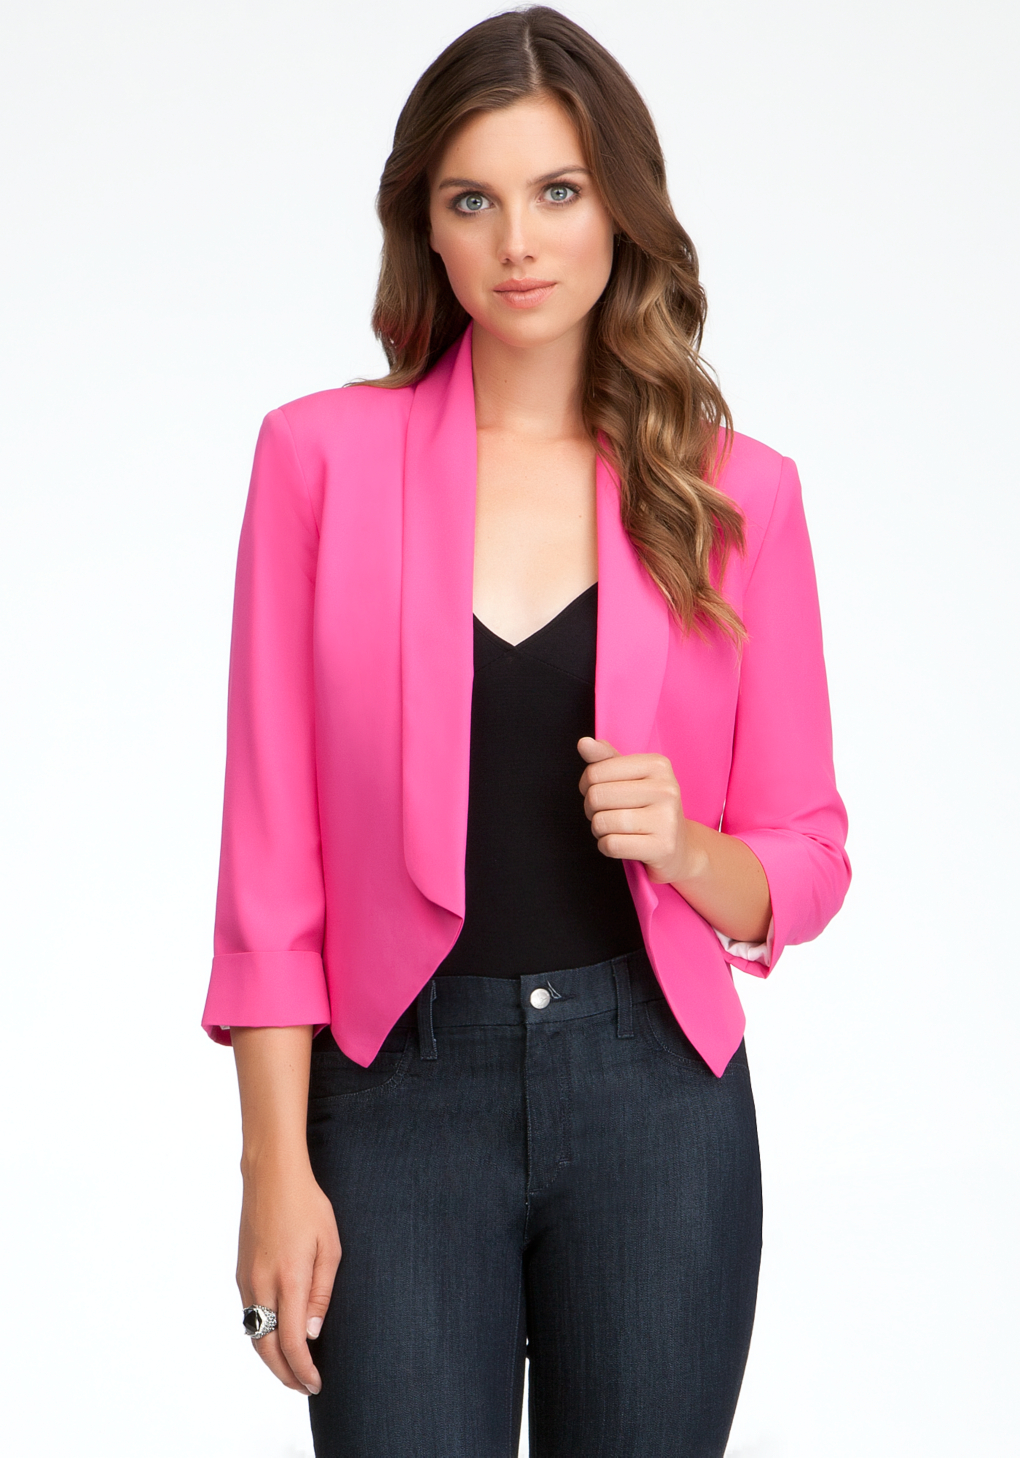 Team a smart blazer jacket with a crisp button up shirt and tailored pants for a seriously slick office look, or style a cropped blazer with a simple party dress and sock ankle boots for a fresh new season look you can take